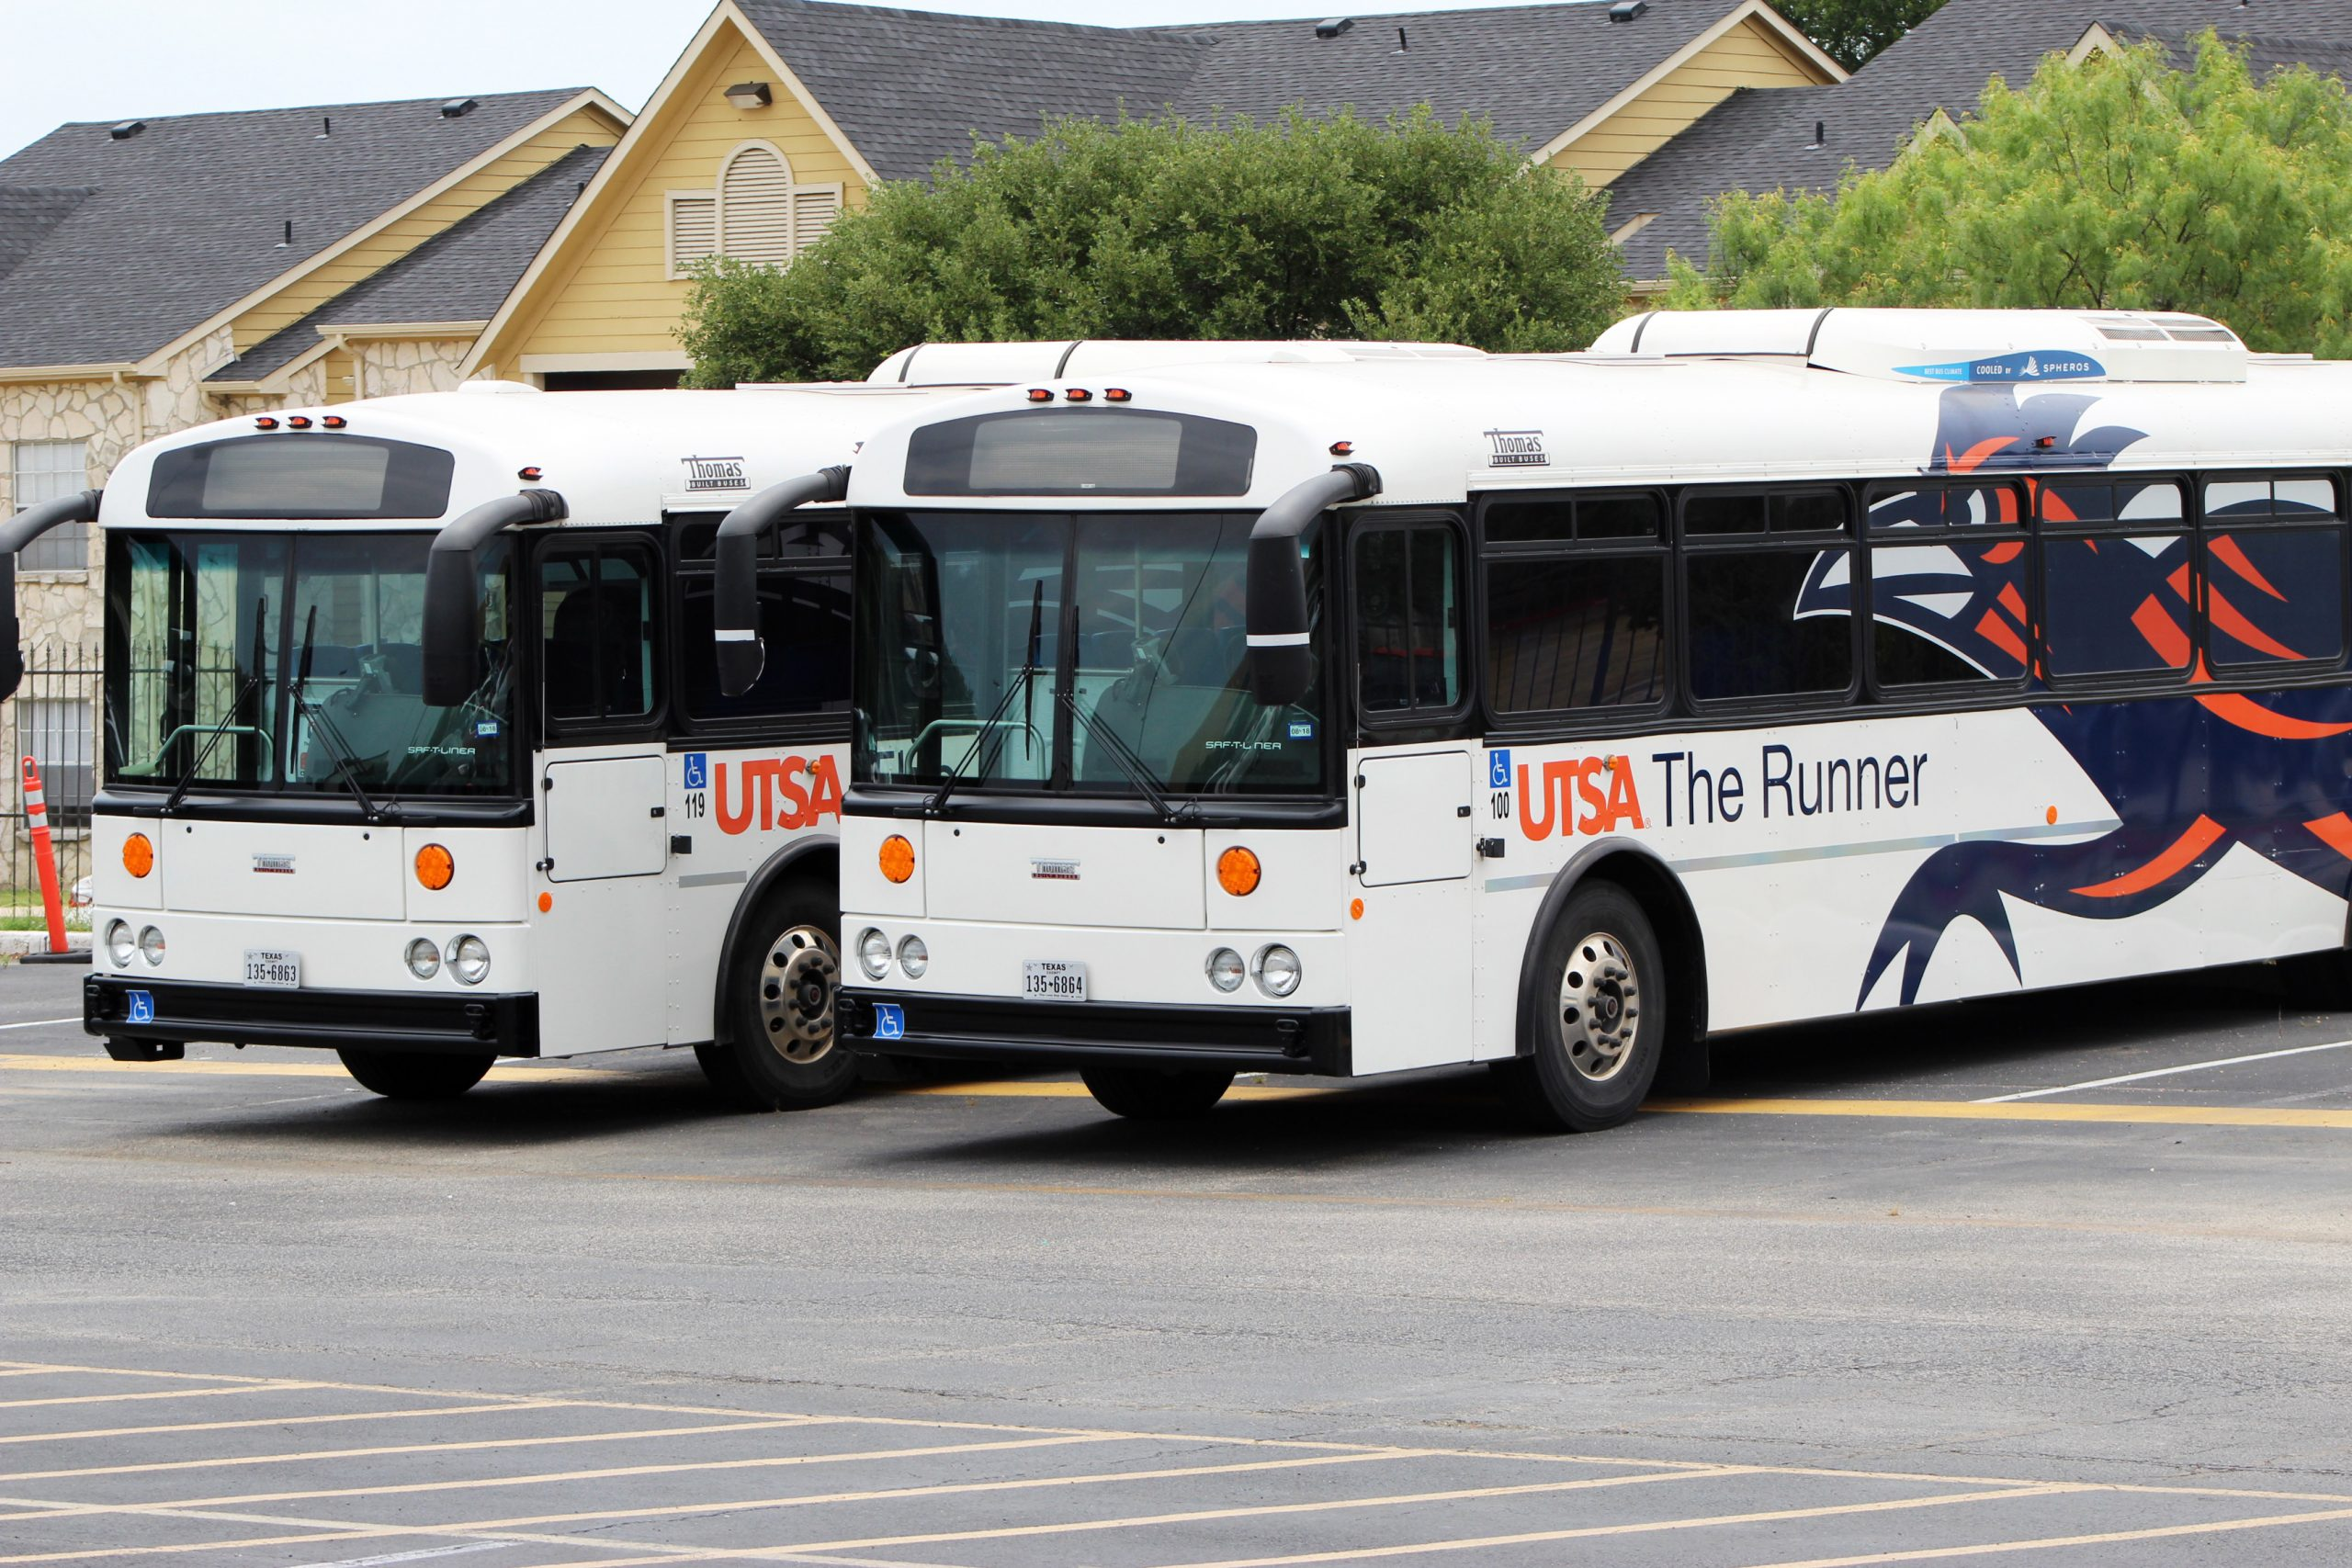 UTSA shuttles parked in Brakenridge Parking Lot 1.  Ricky Galindo/The Paisano